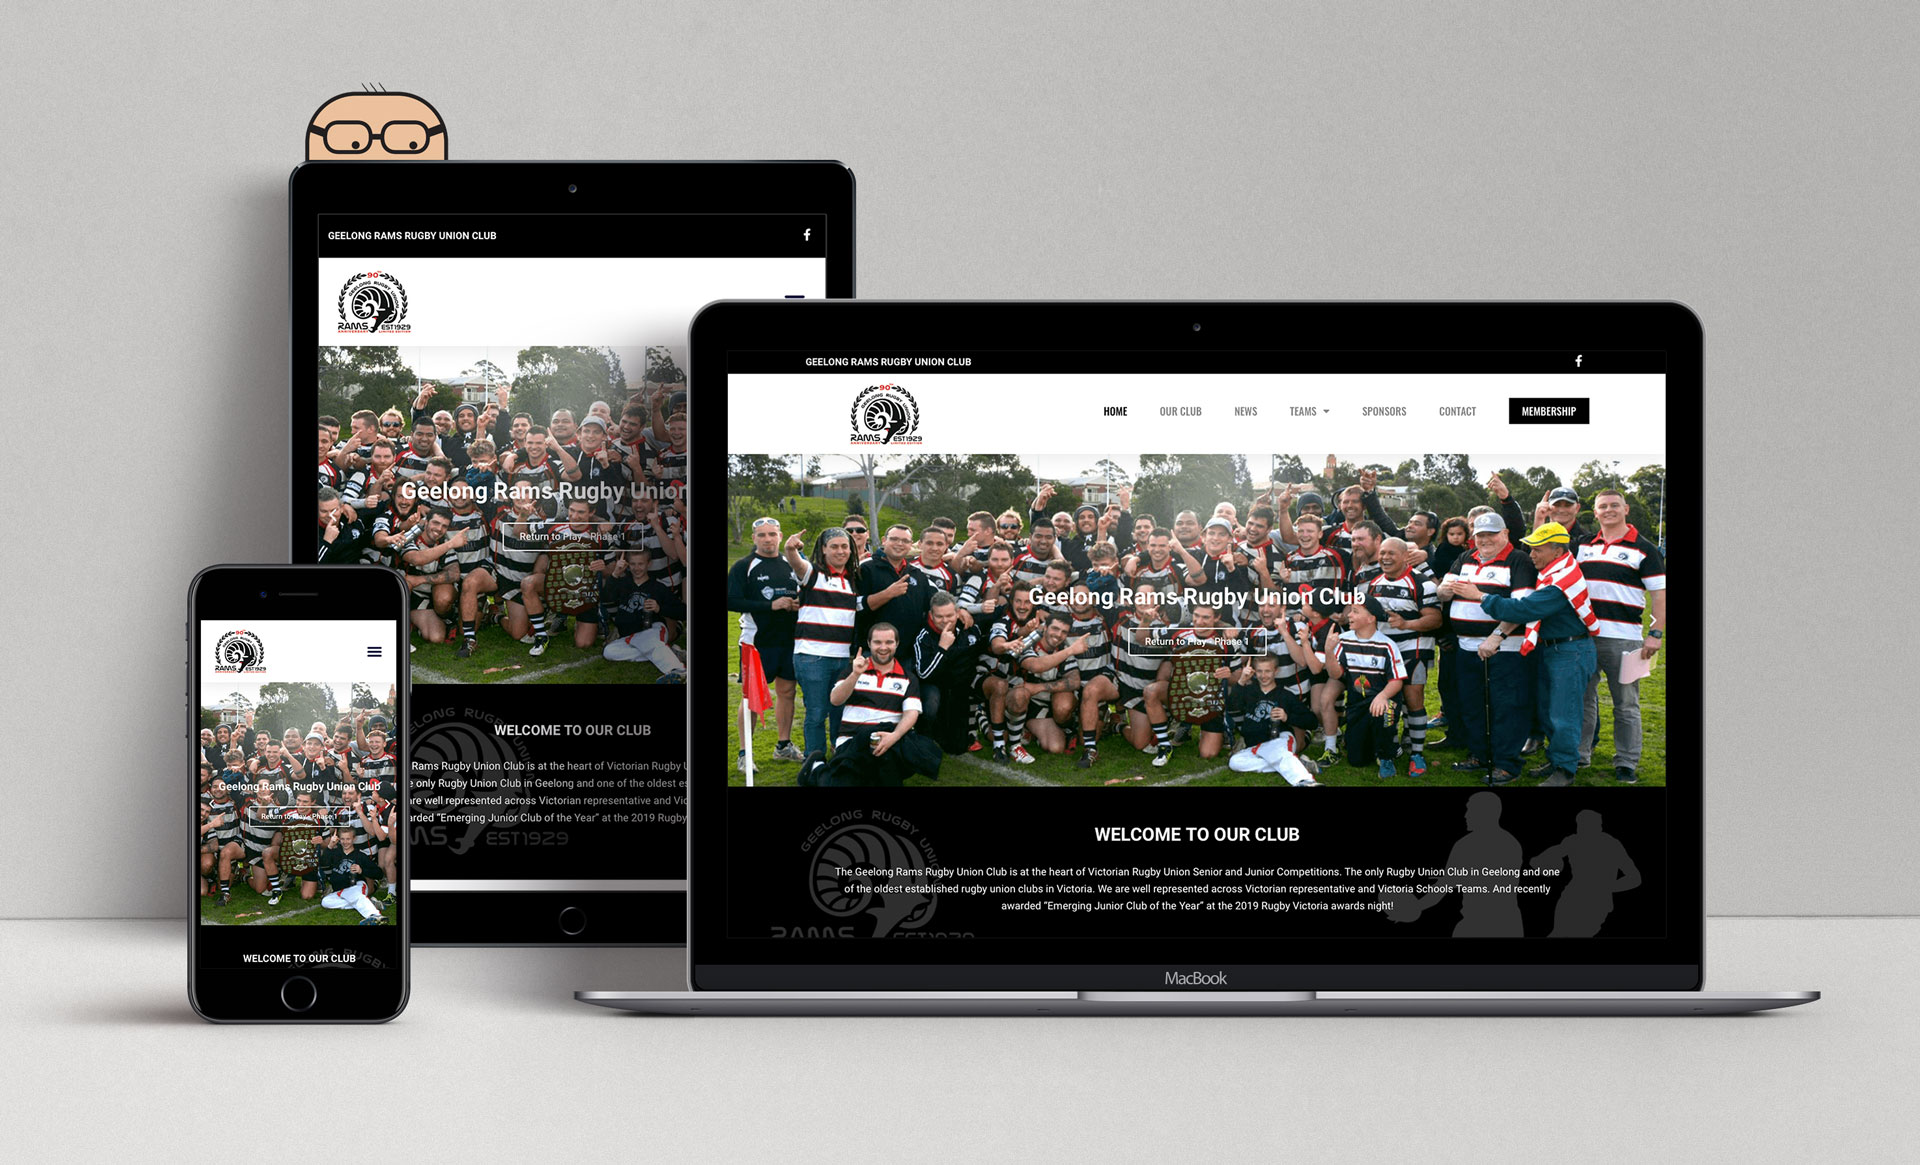 Geelong Rams Rugby Union Club Mockup